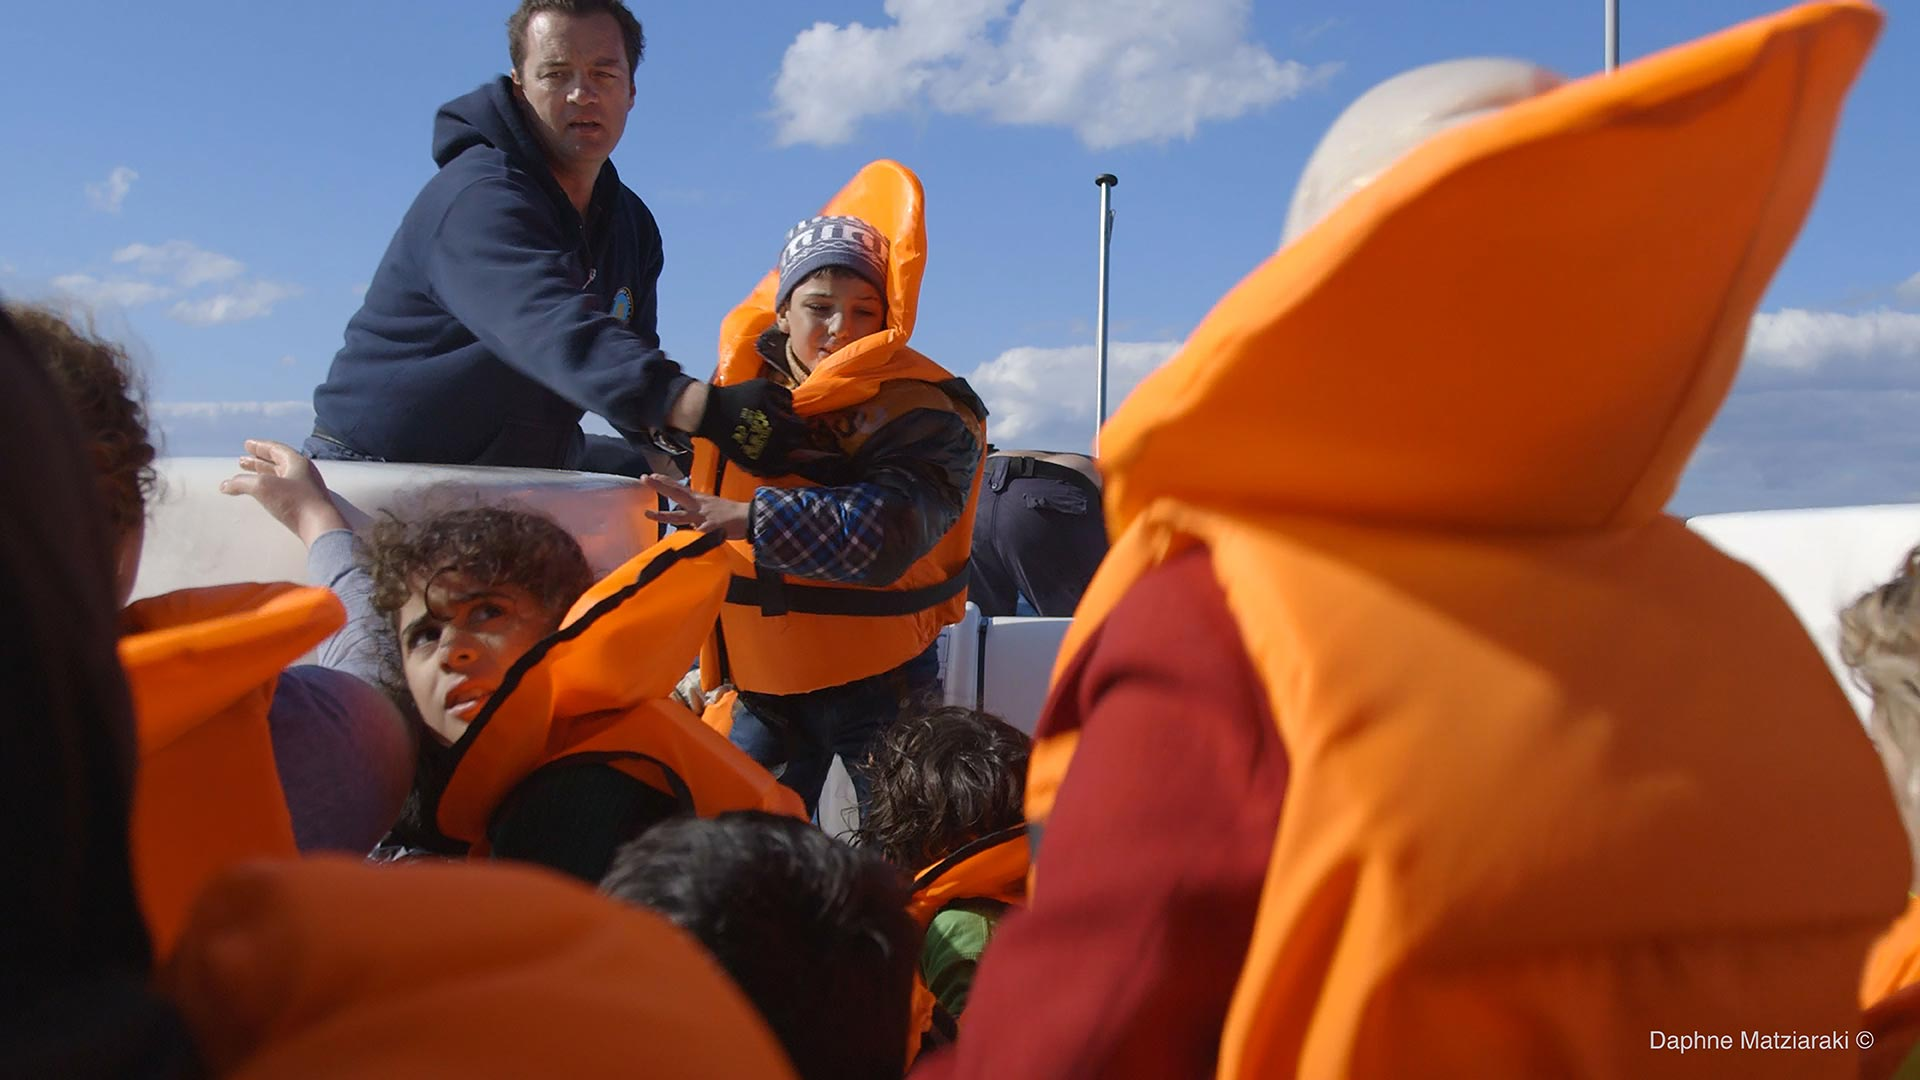 Captain Kyriakos Papadopoulos is pulling a Syrian boy from a dingy boat that just got rescued.